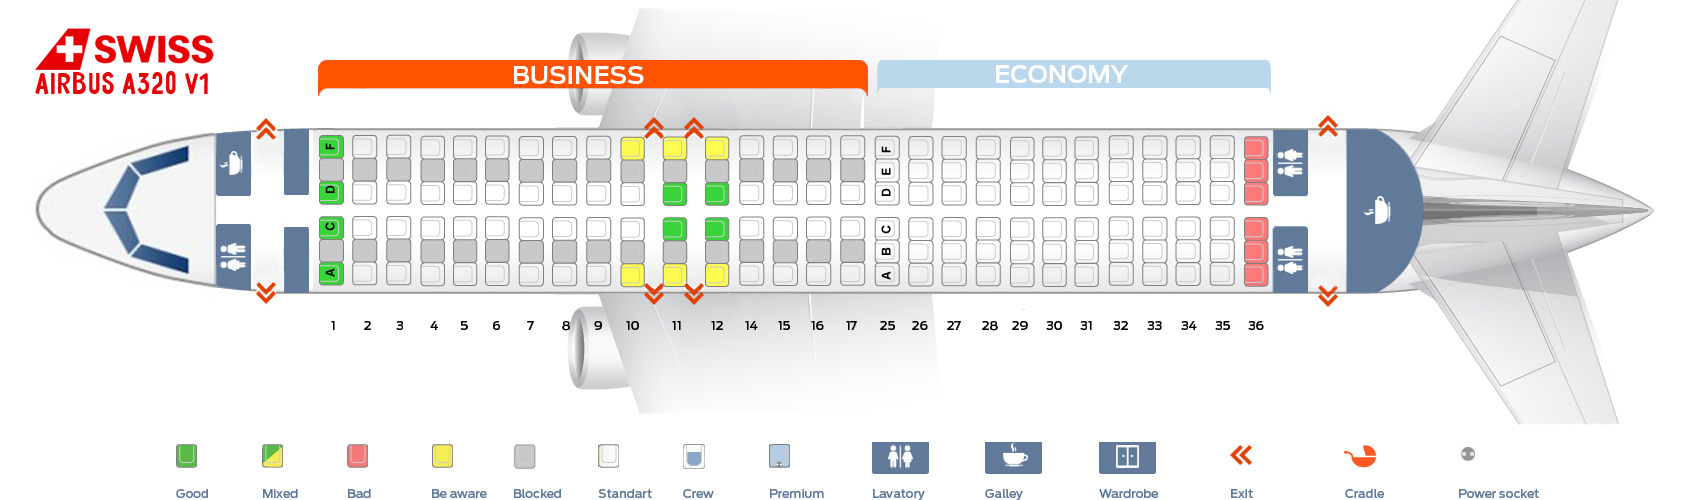 Seat Map Airbus A320 V1 Swiss Airlines